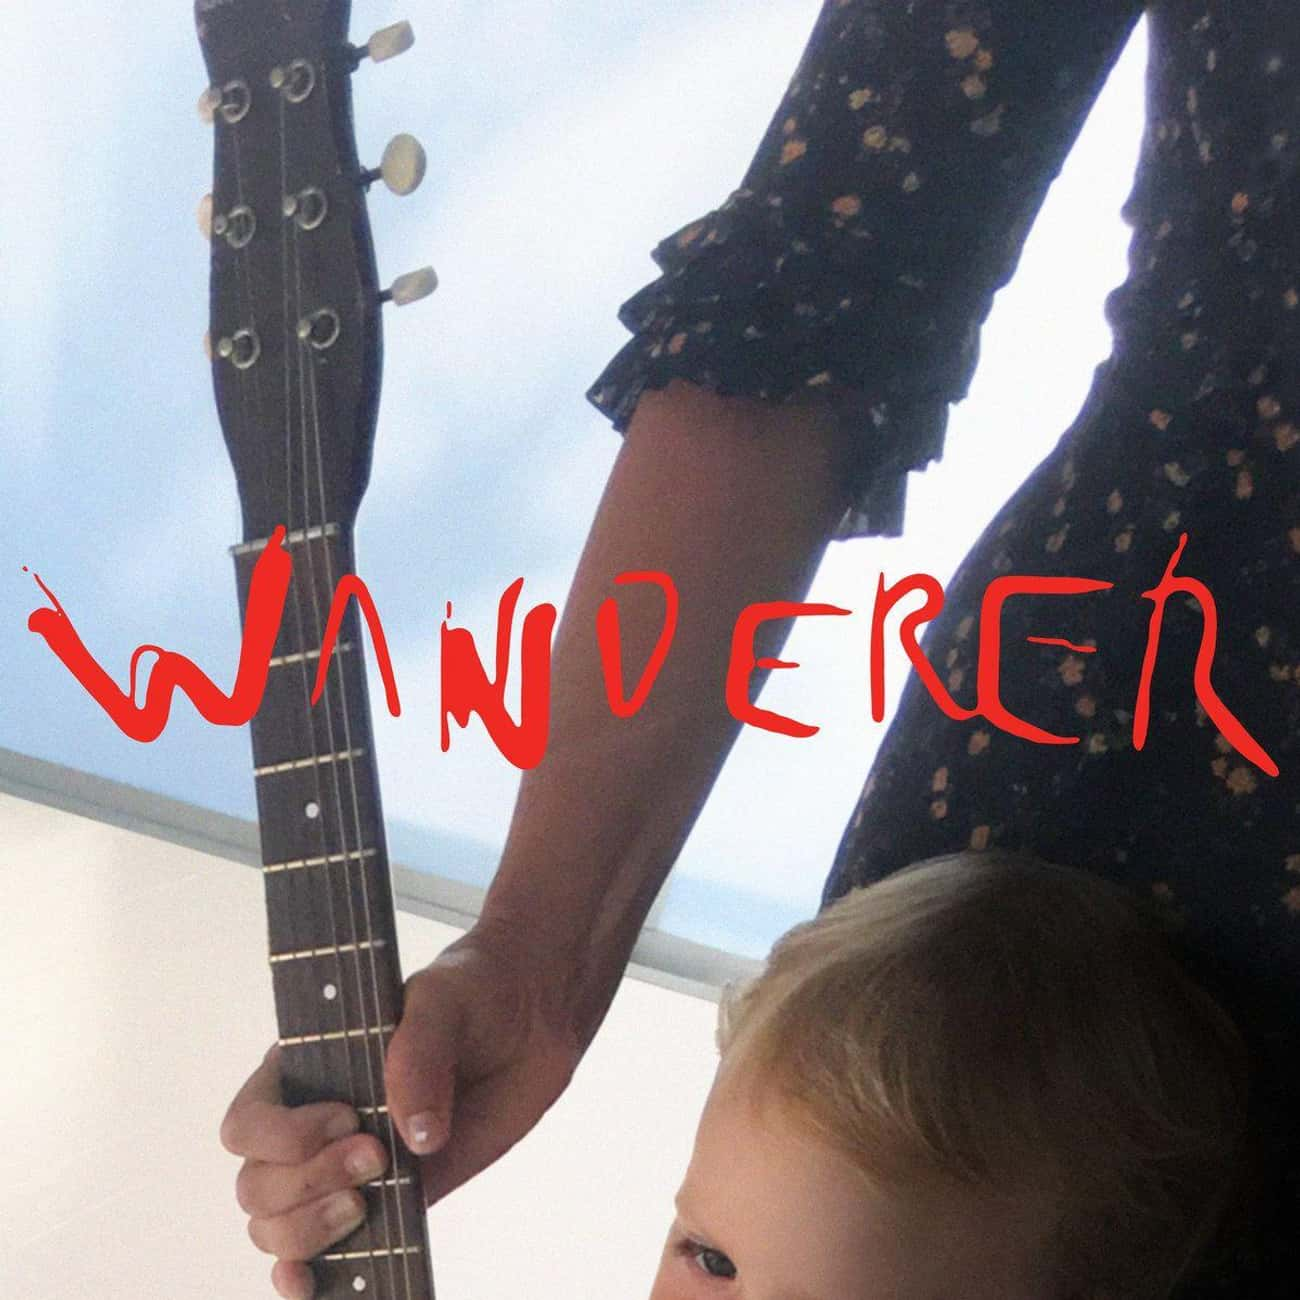 Wanderer is listed (or ranked) 4 on the list The Best Cat Power Albums, Ranked